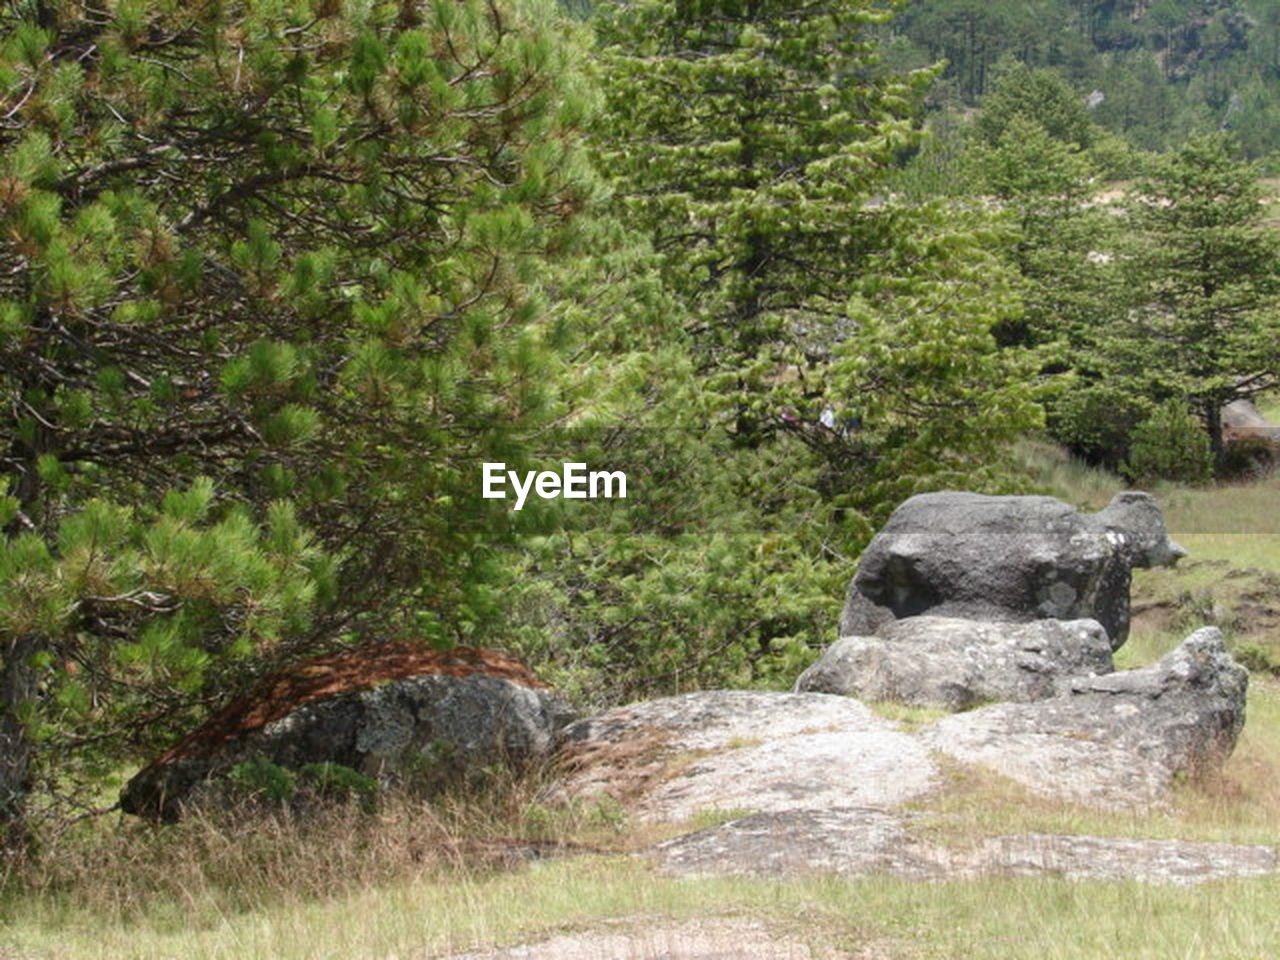 nature, tree, no people, rock - object, forest, day, landscape, growth, tranquility, outdoors, scenics, grass, beauty in nature